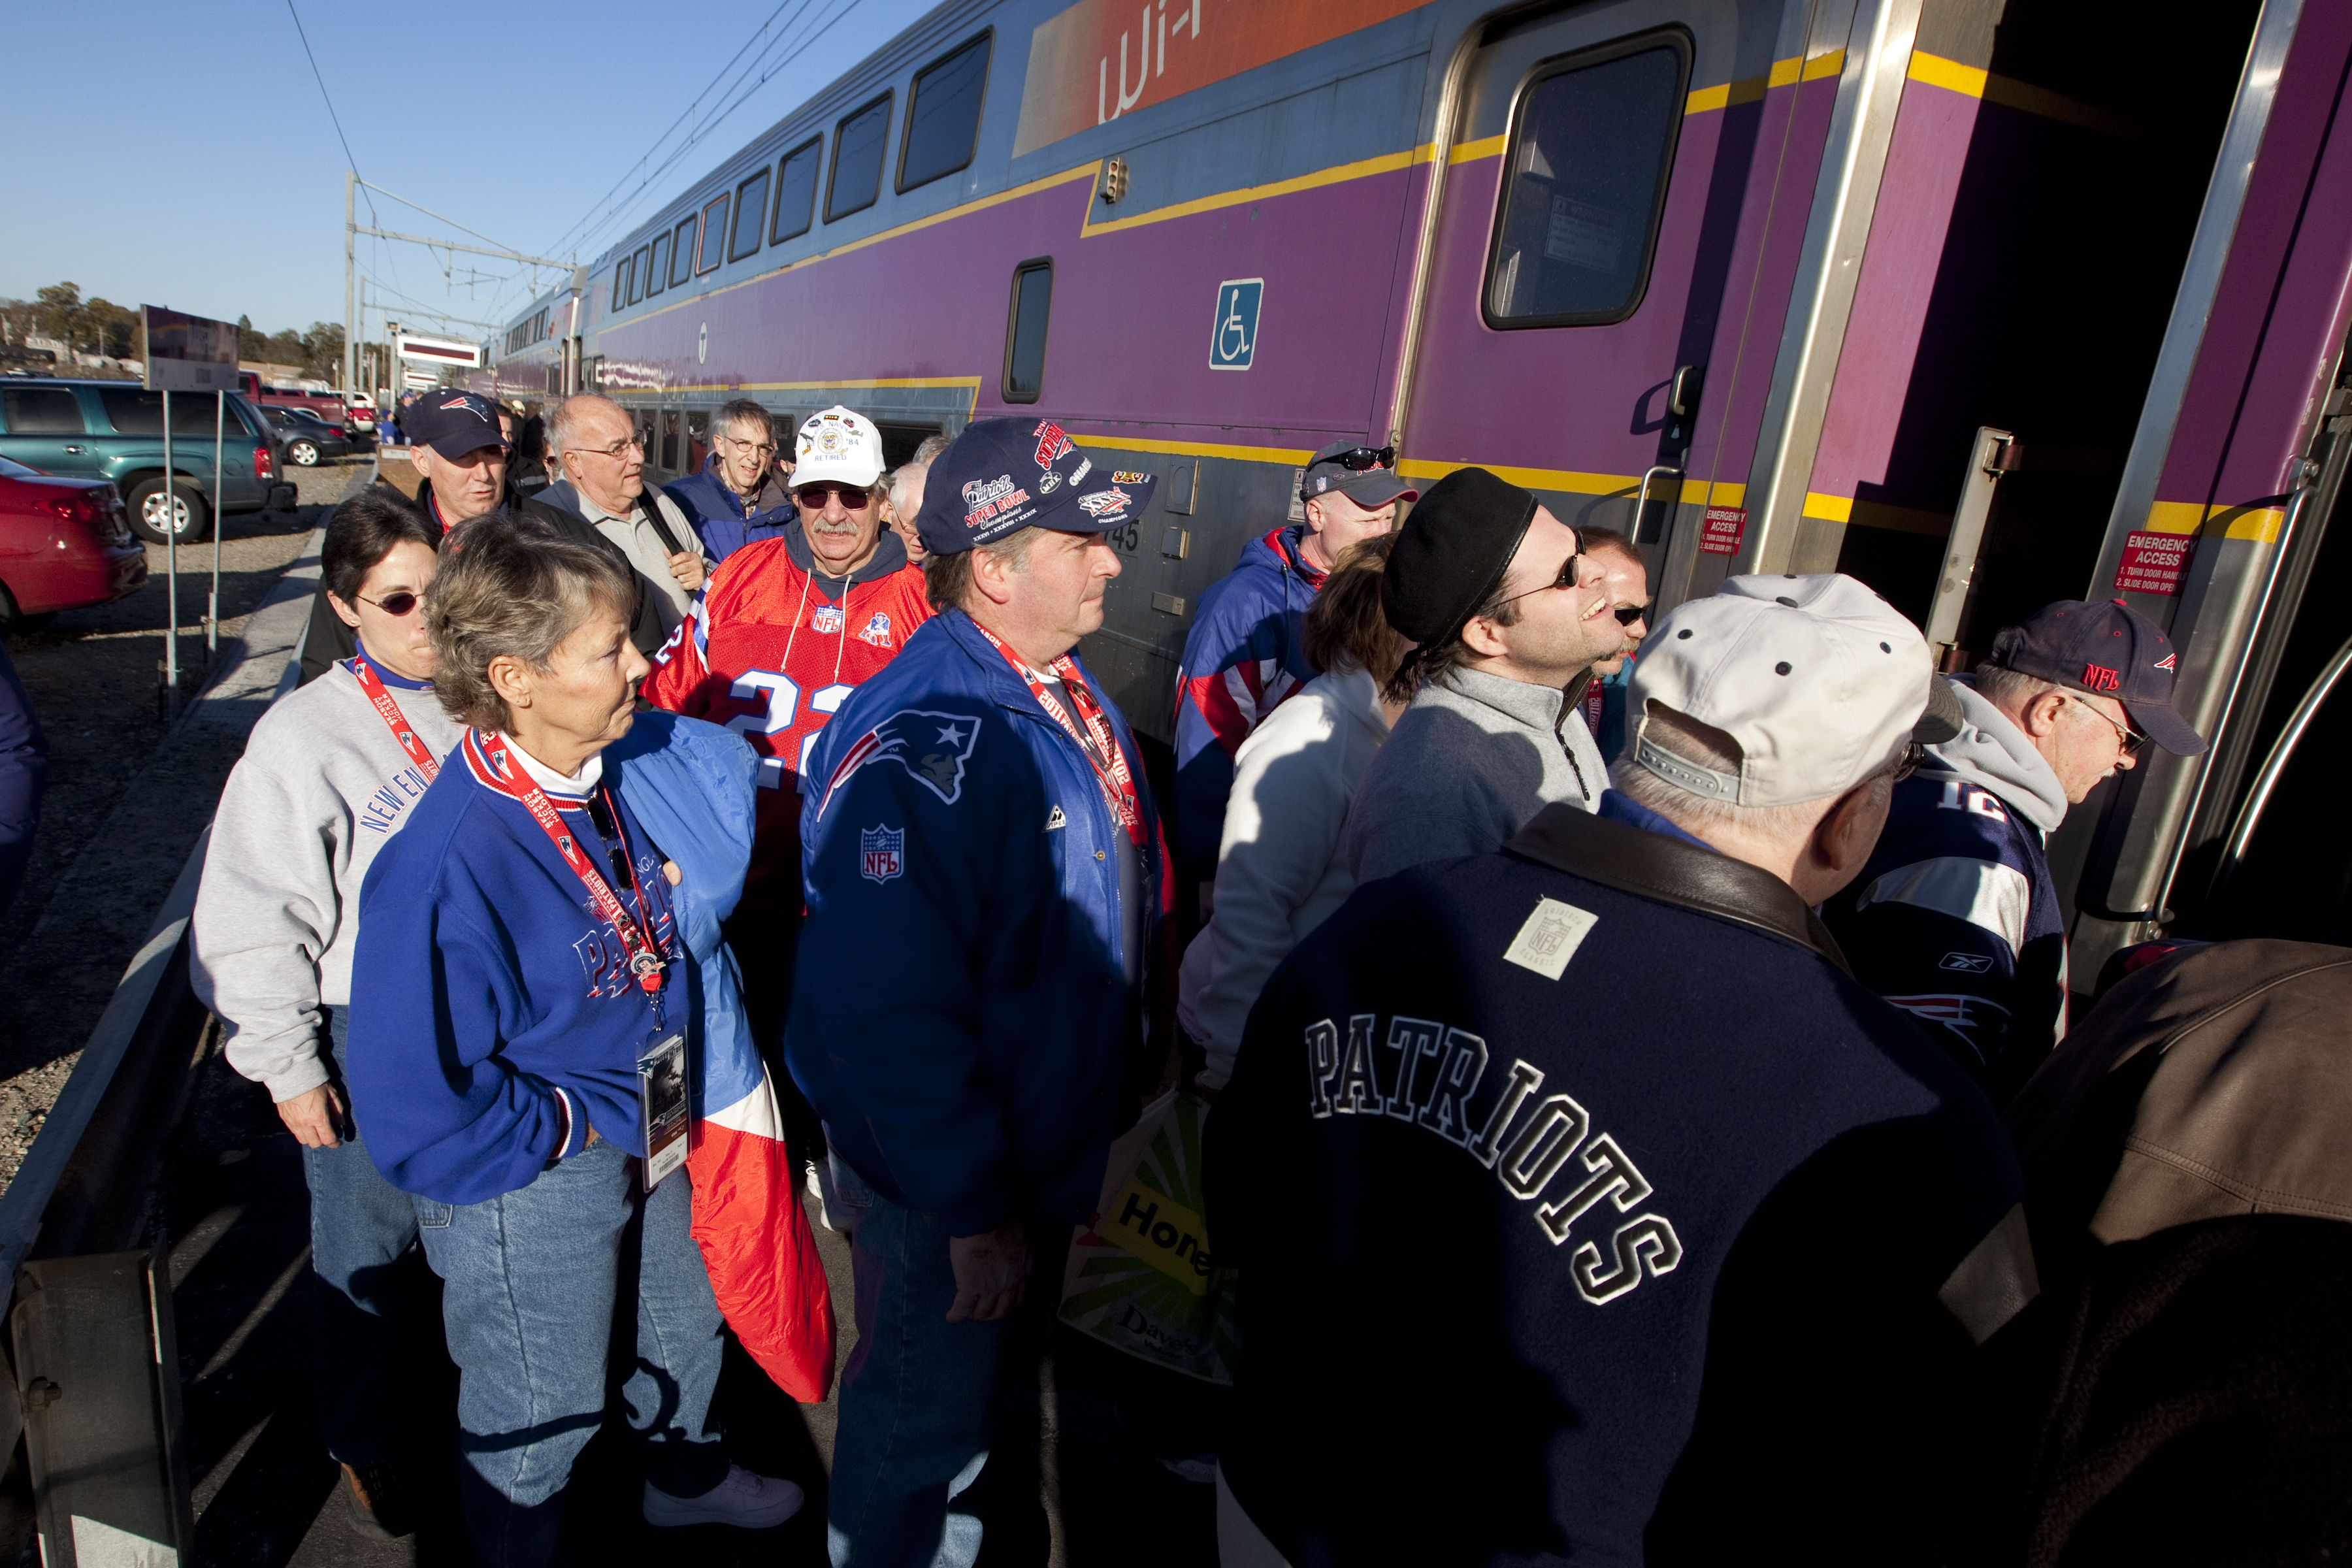 Pilot program could boost rail travel in Western Mass  - The Boston